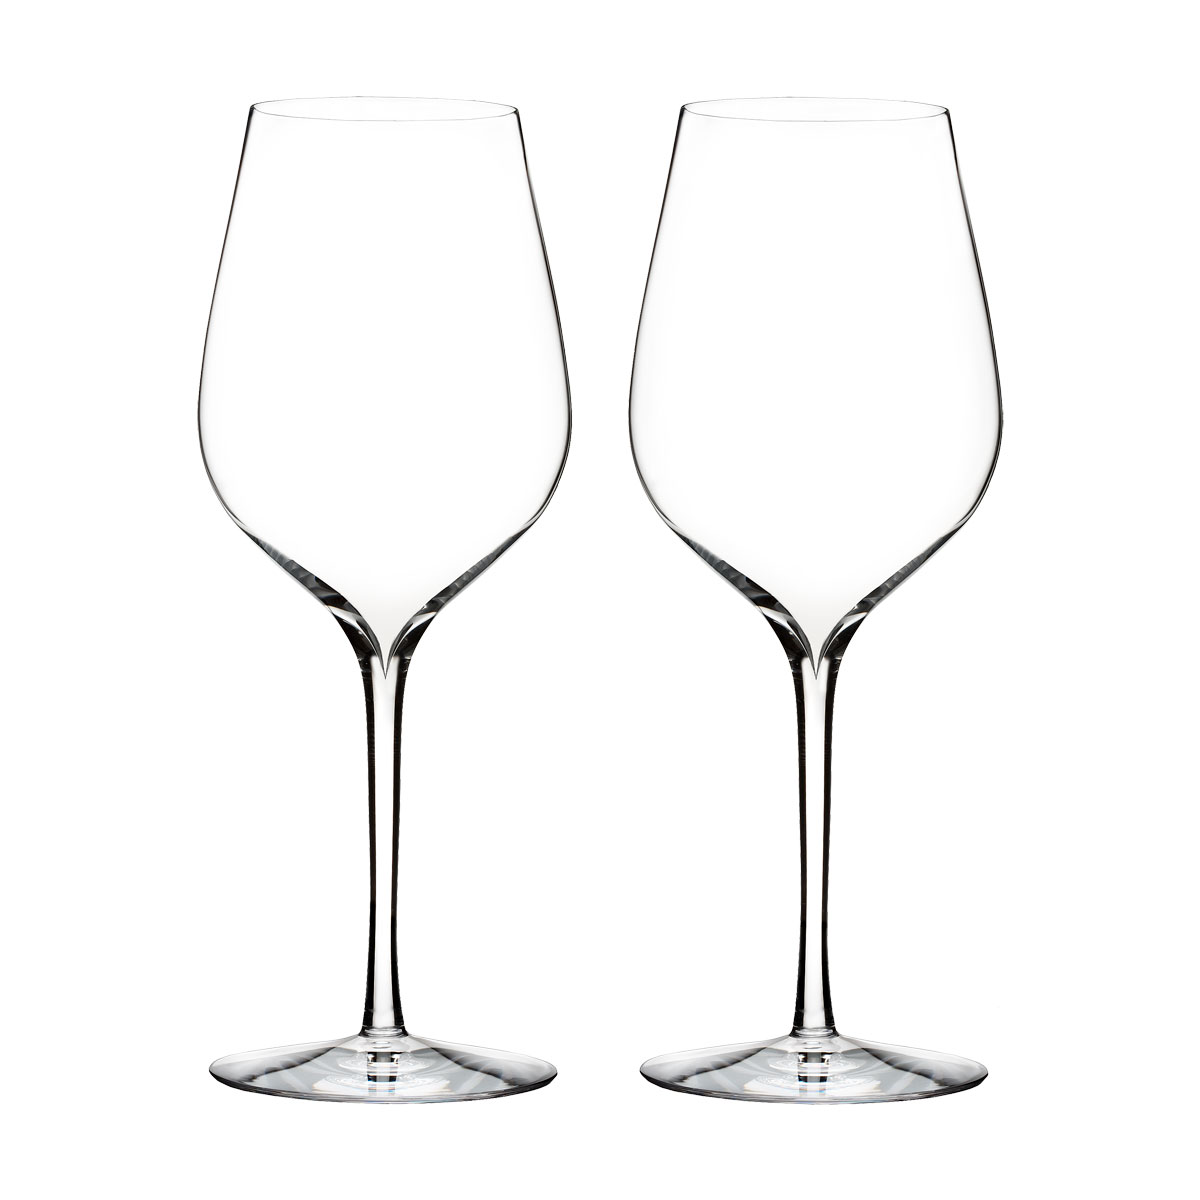 Waterford Crystal, Elegance Sauvignon Blanc Crystal Wine Glasses, Pair